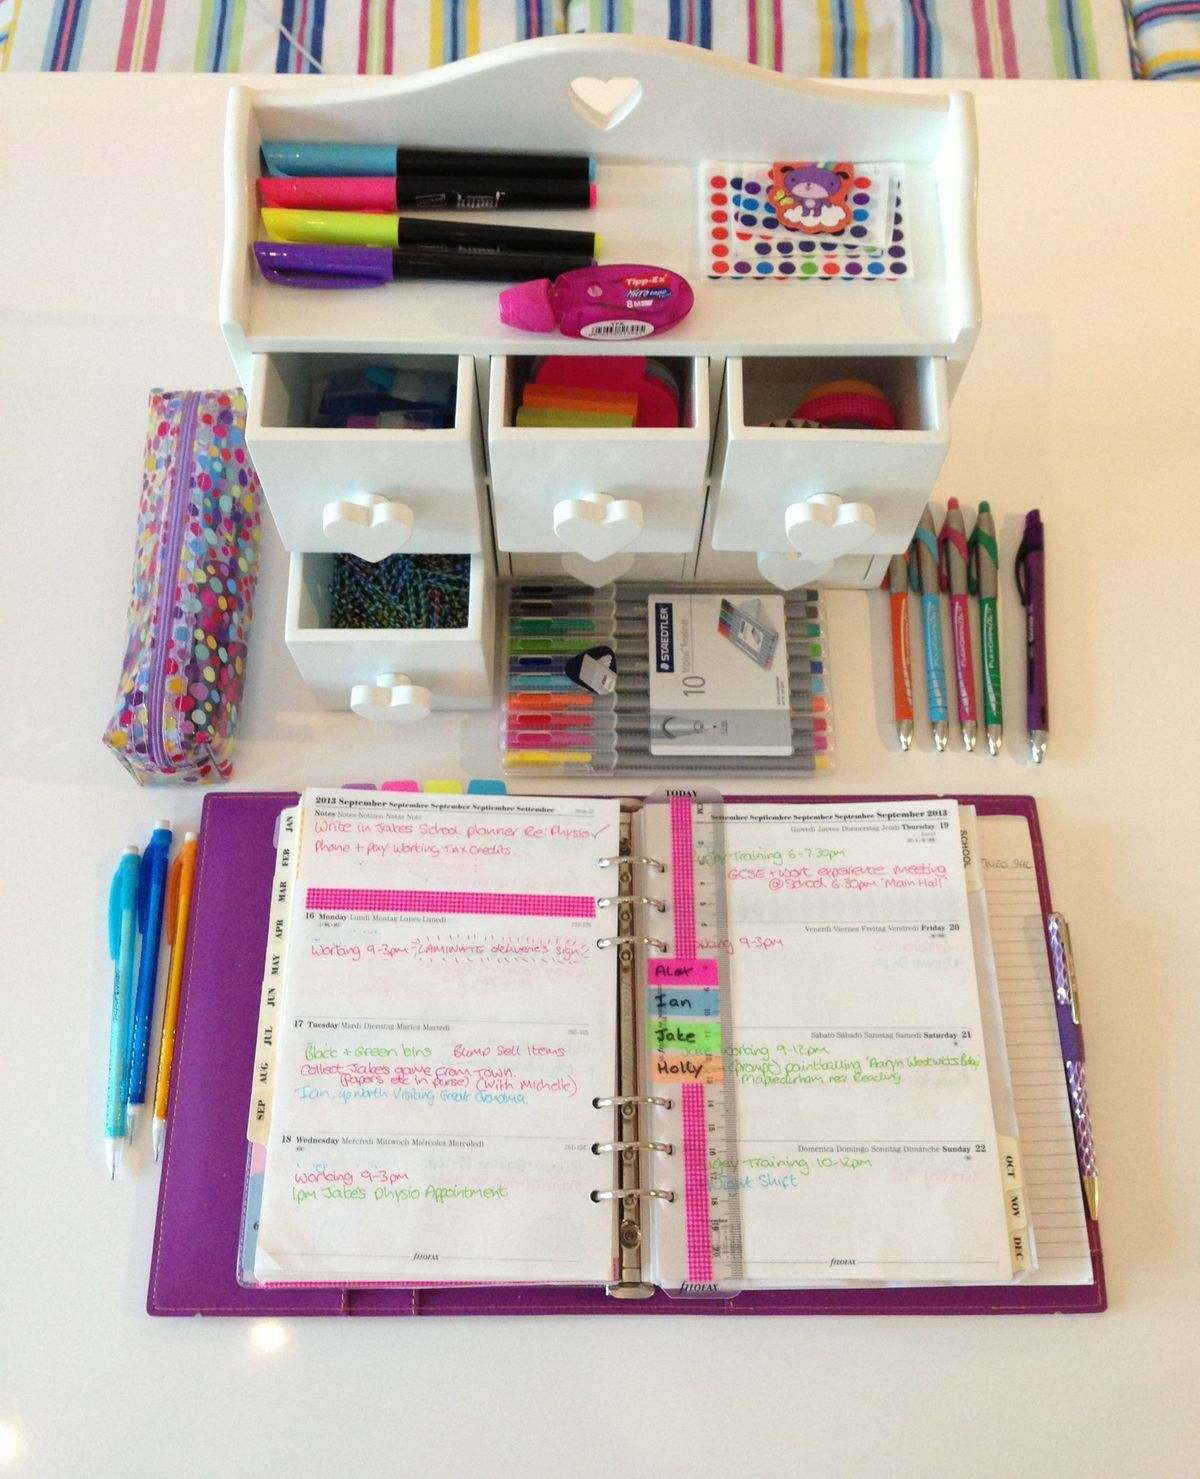 Every College High School Student Needs This